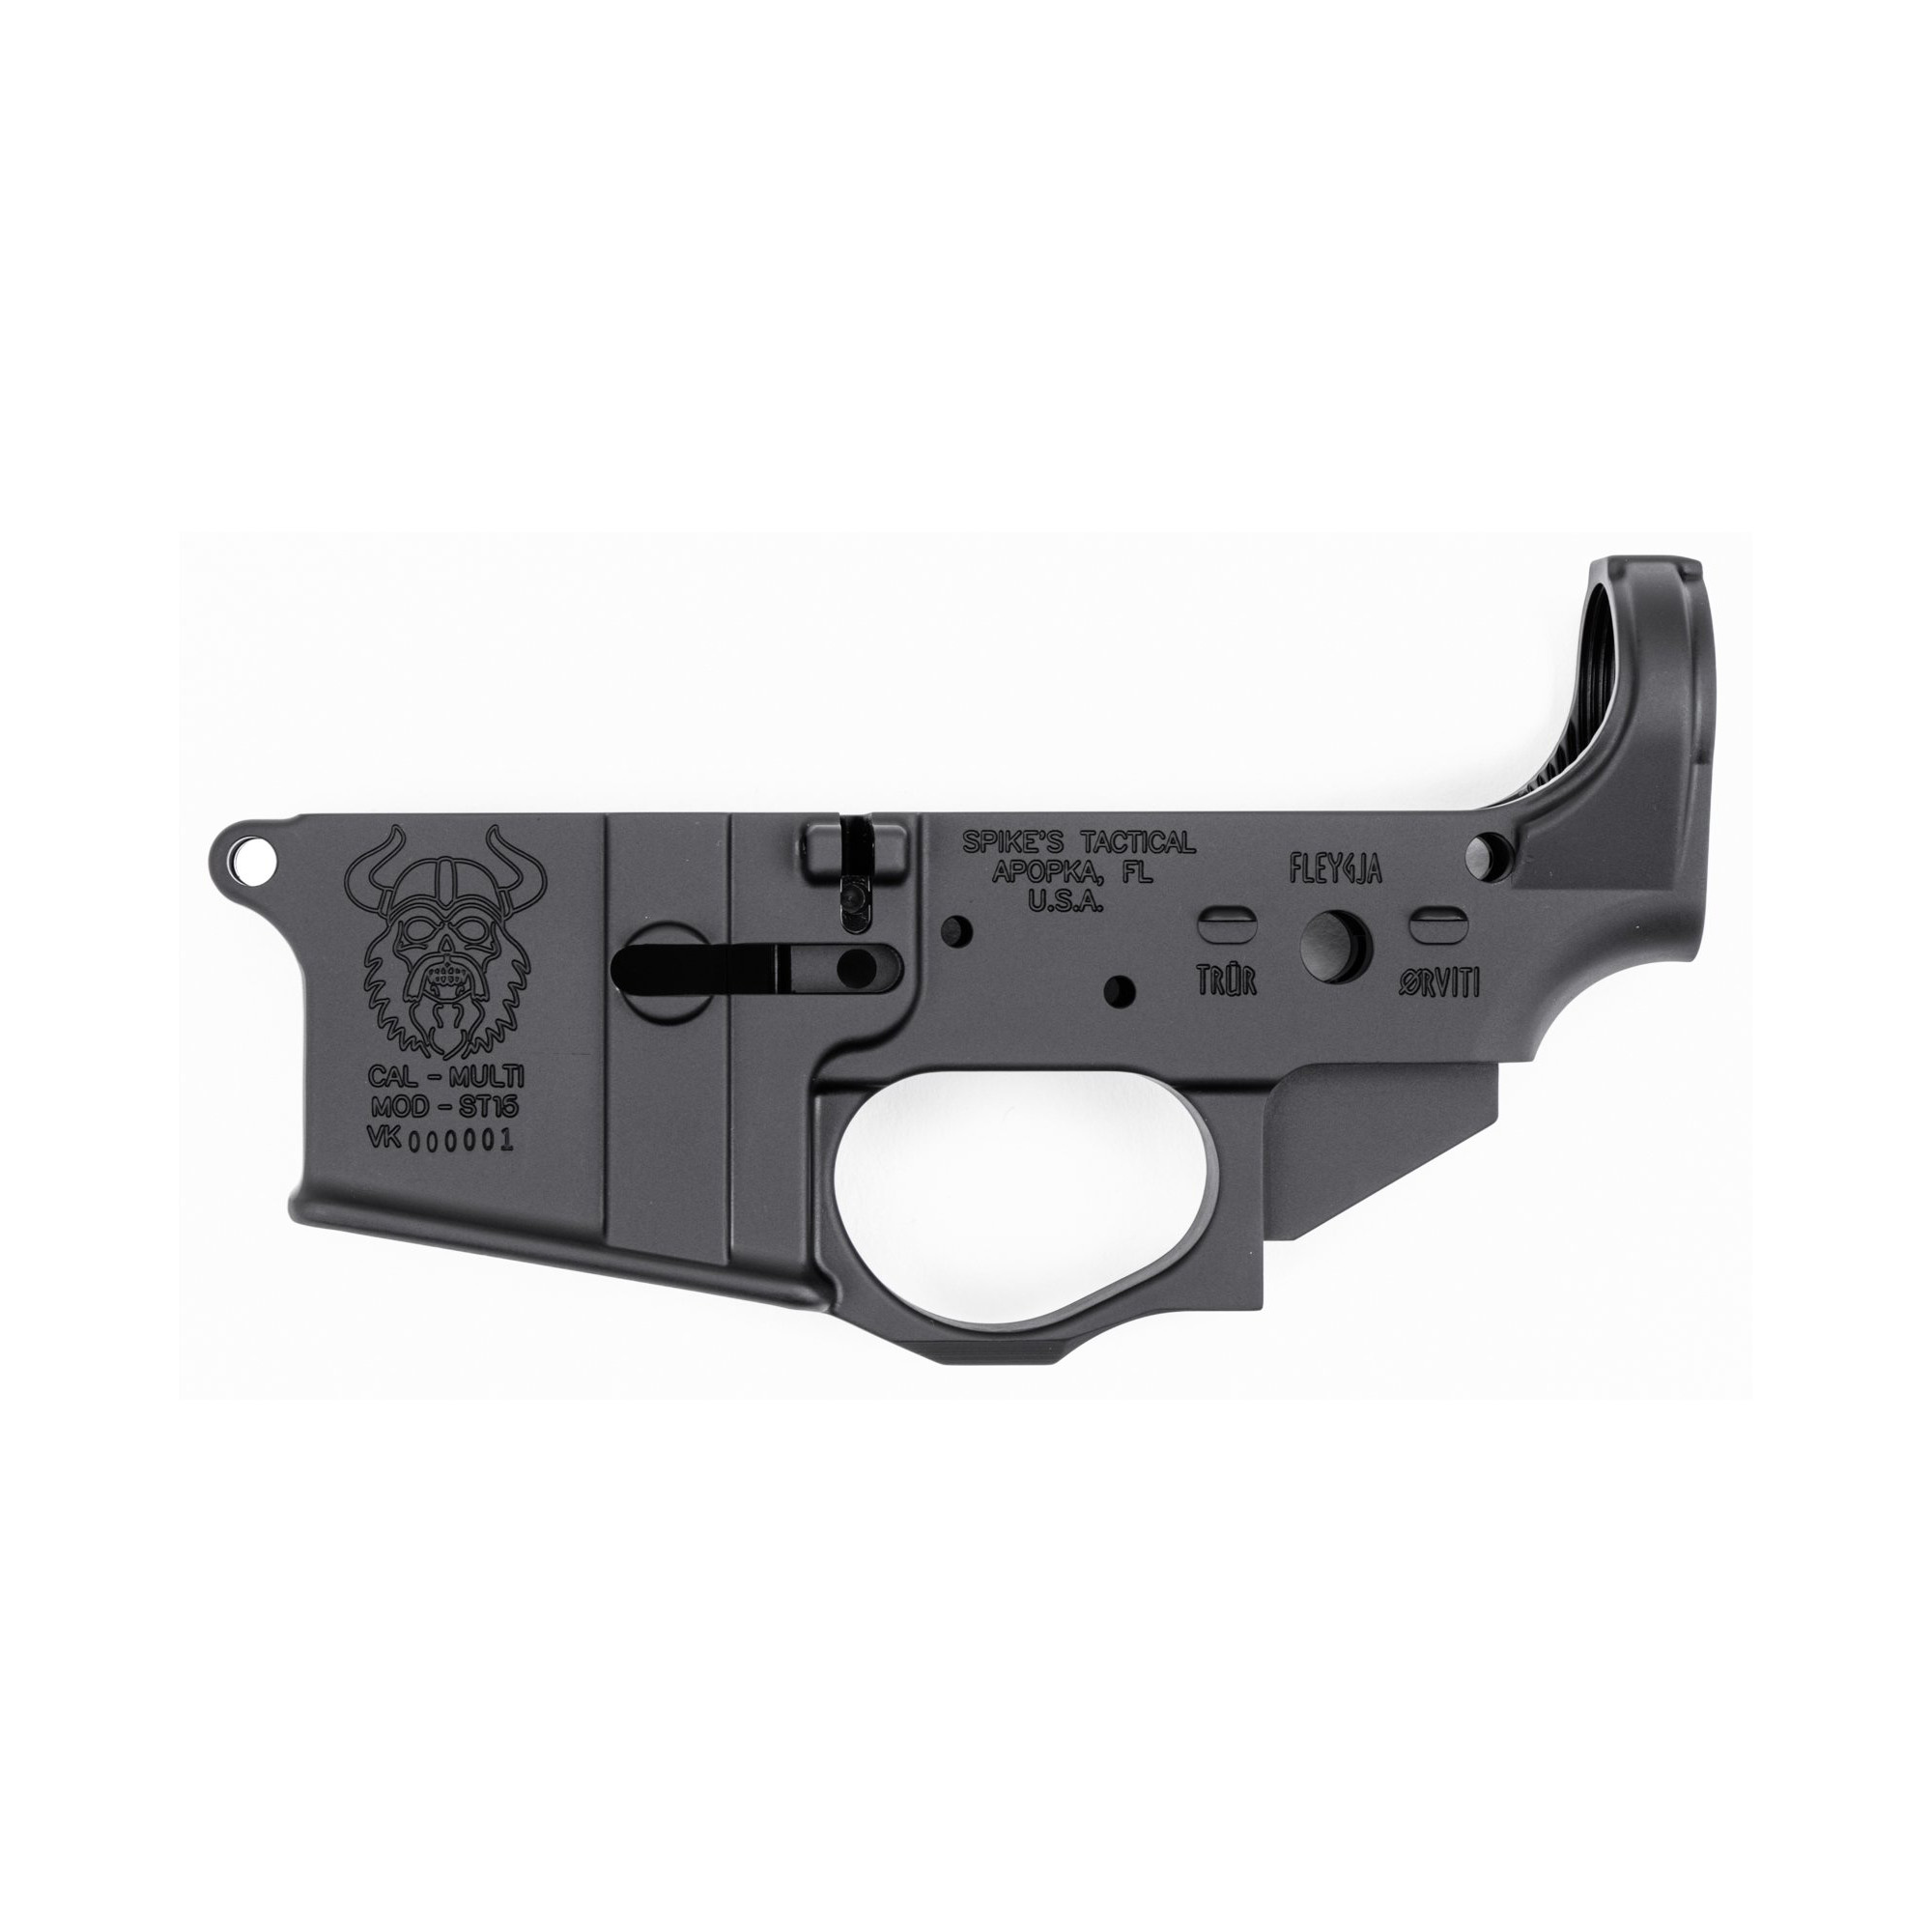 Spikes Stripped Lower (viking)